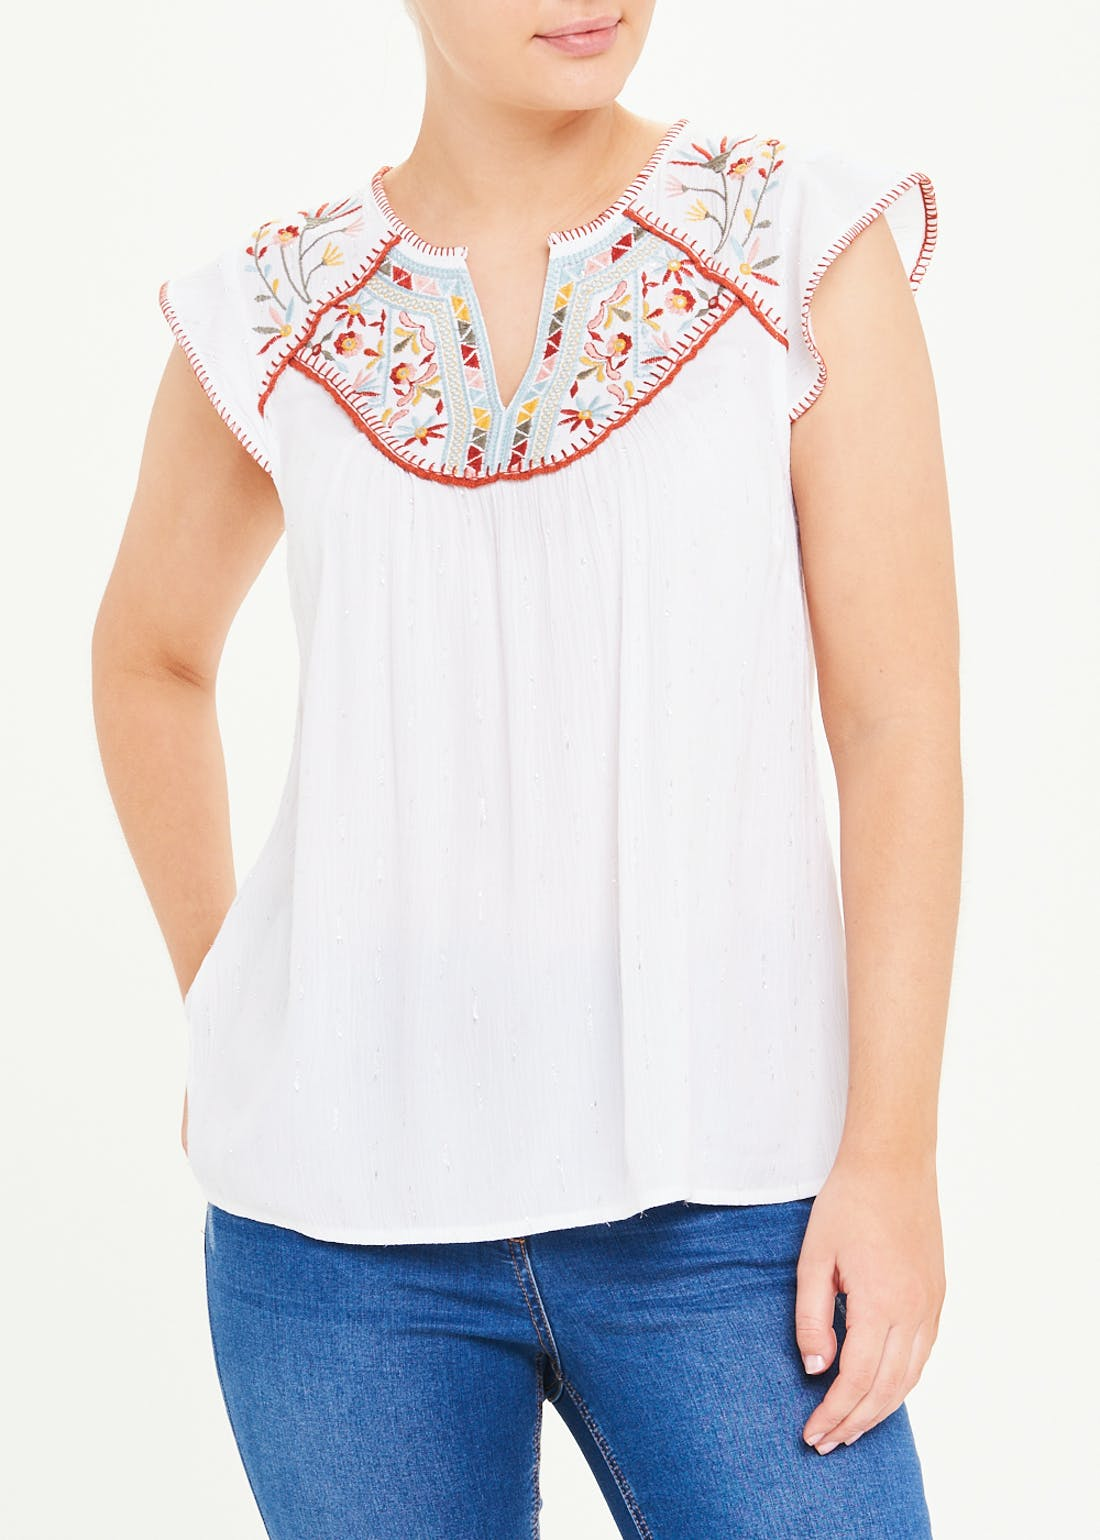 Falmer White Embroidered Yoke Top